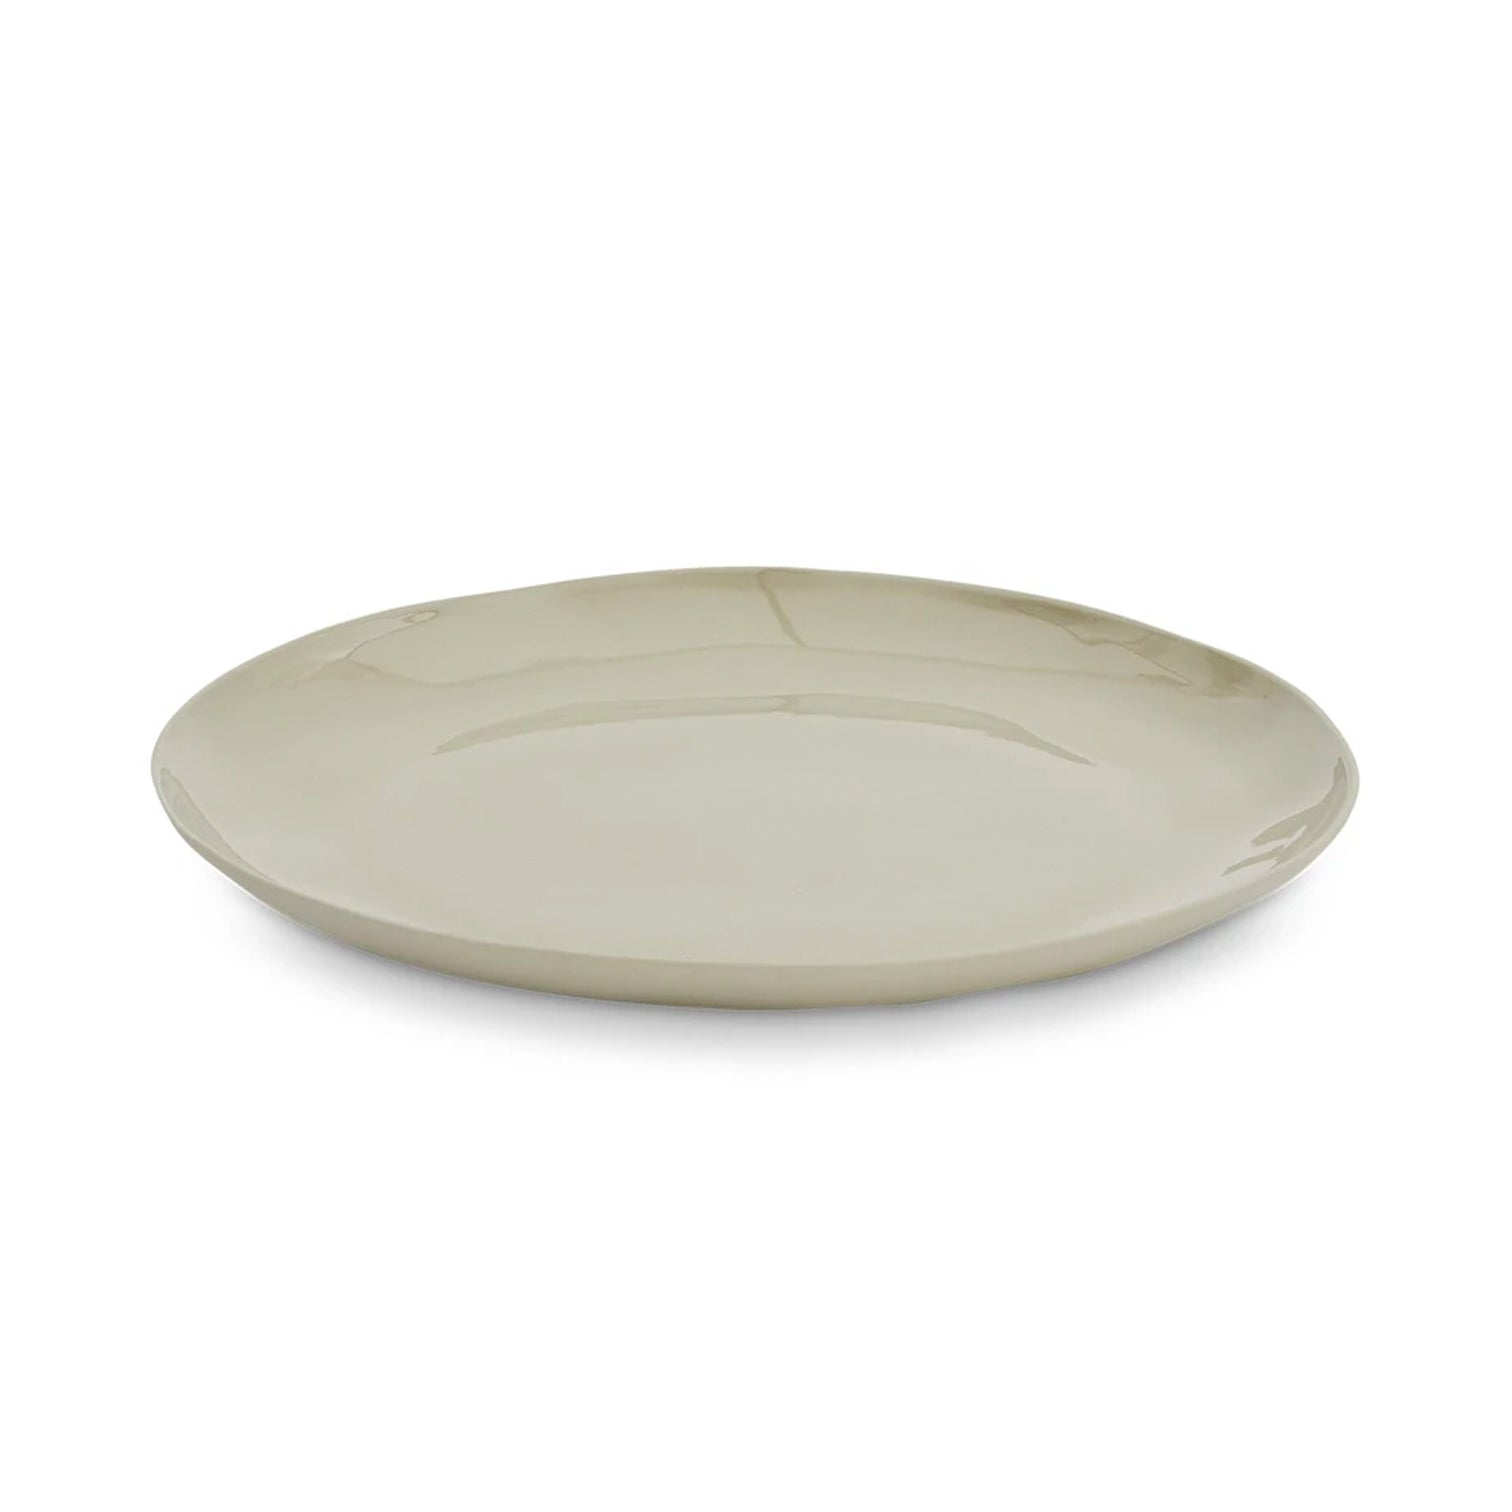 CERAMIC Side Plate- GREY - 25cm